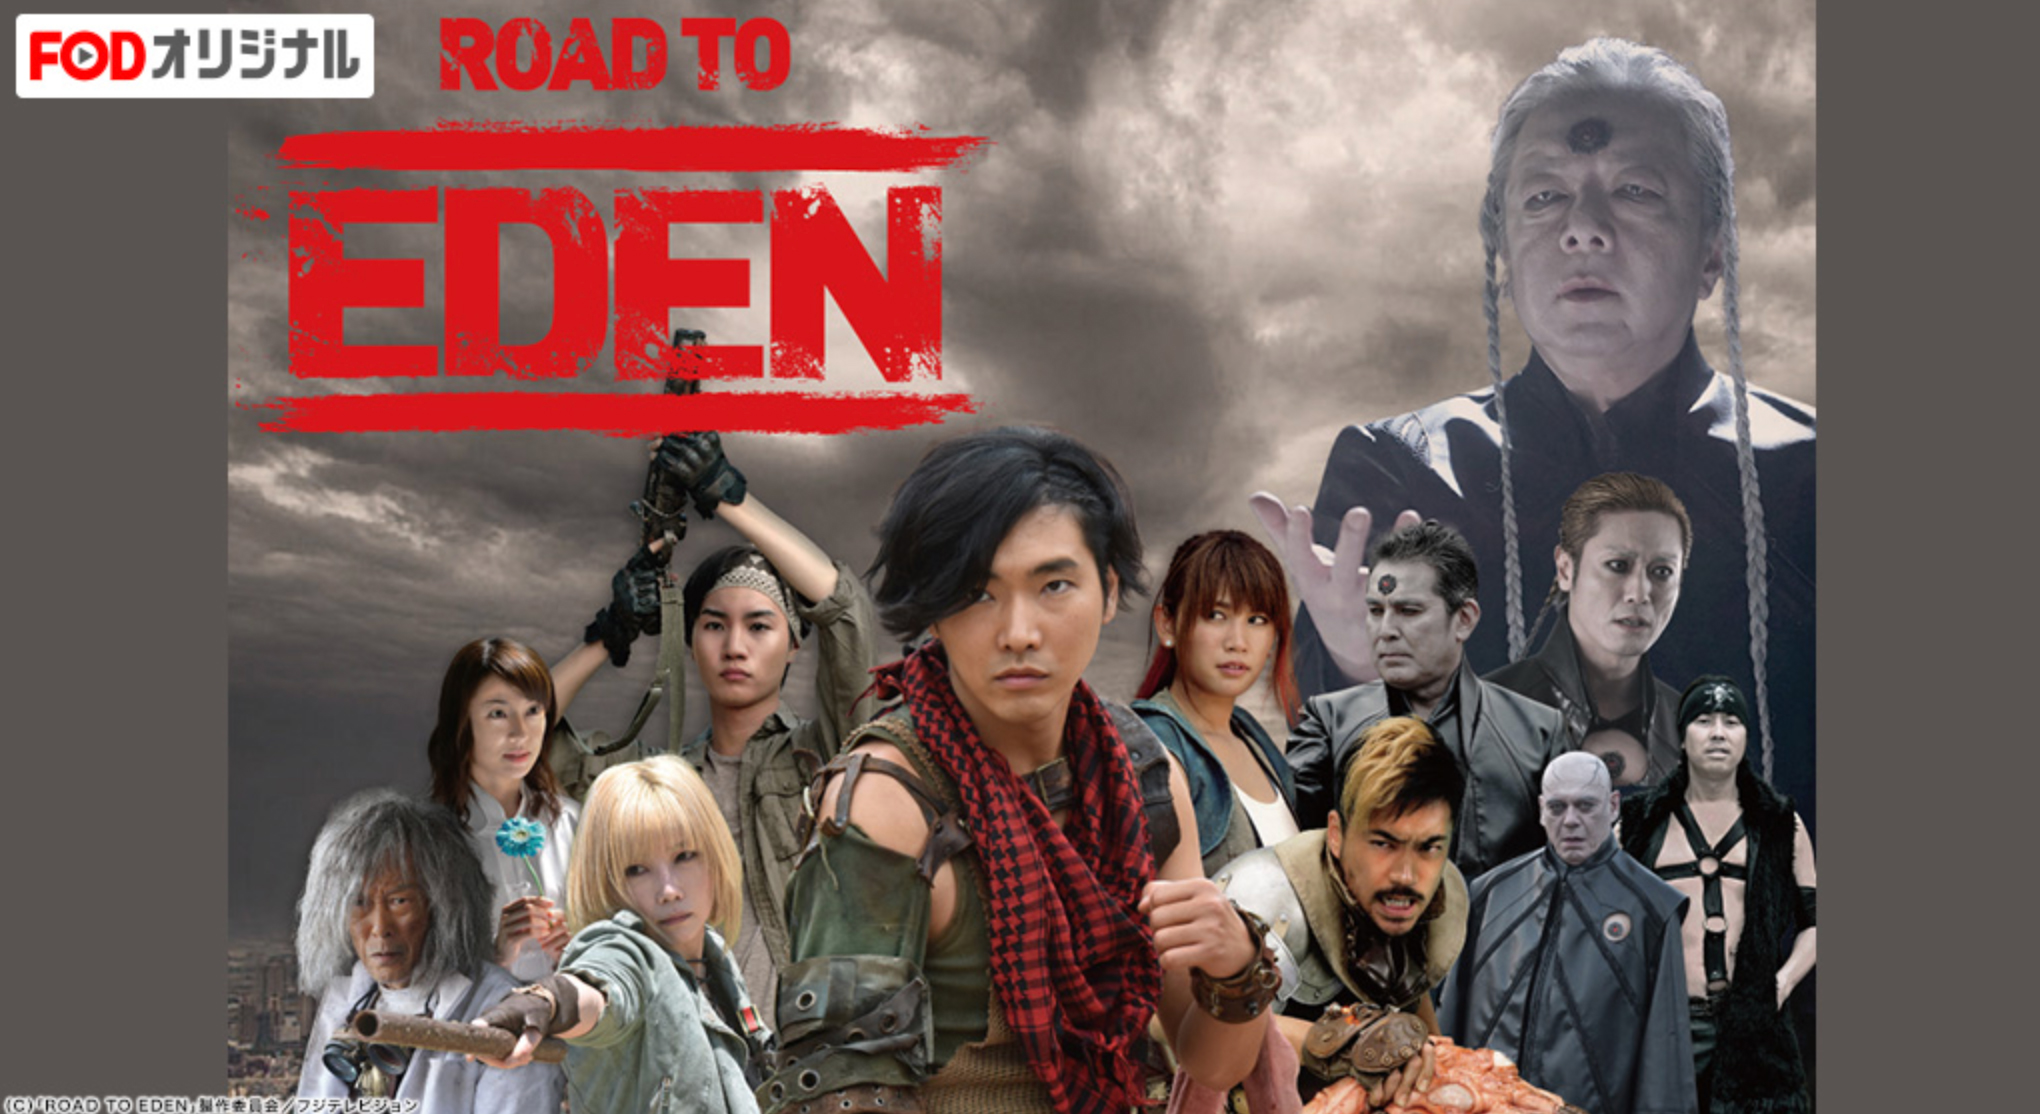 ROAD TO EDEN 動画